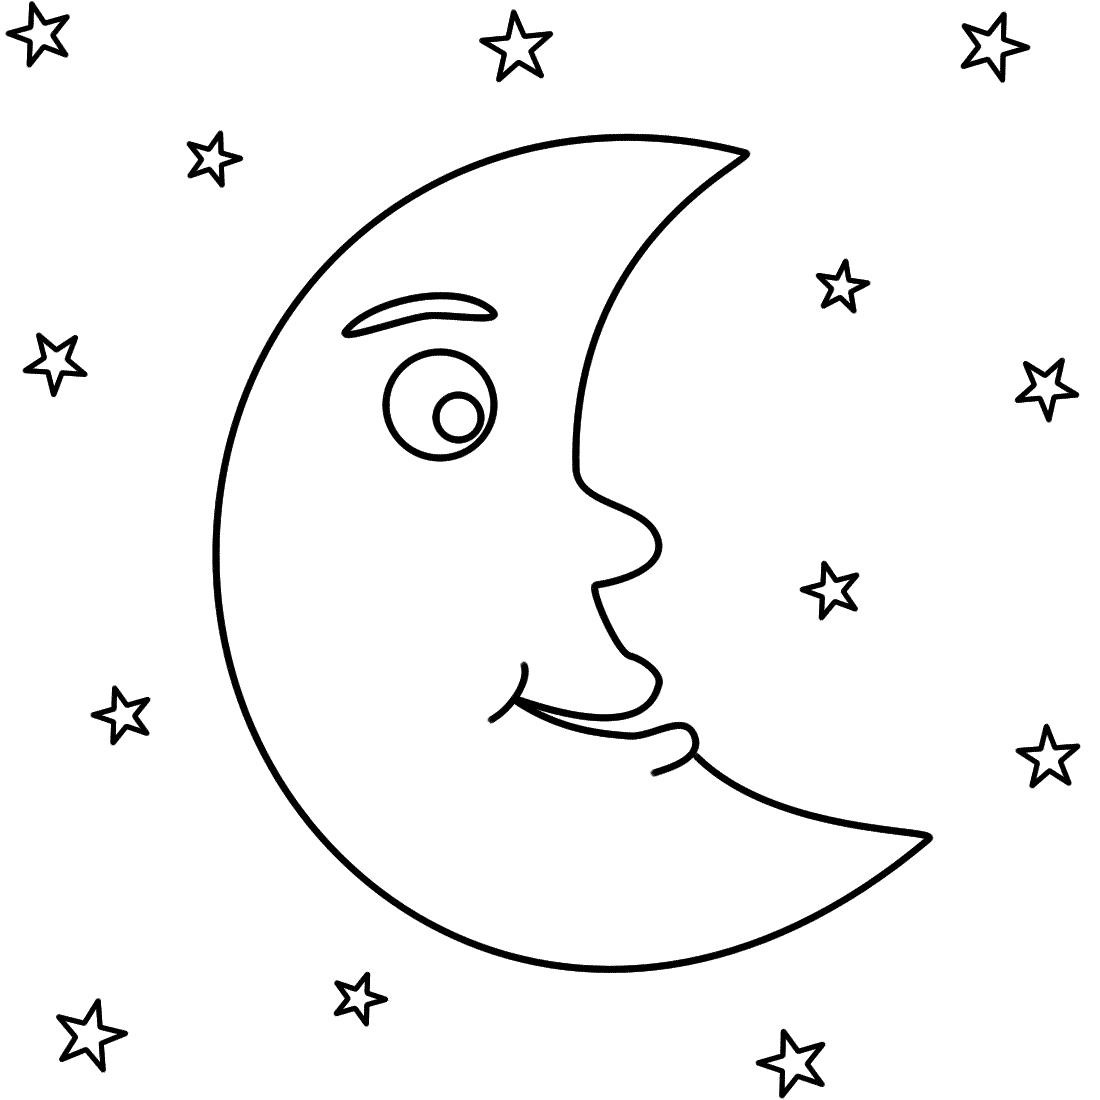 moon coloring pages moon coloring pages to download and print for free moon pages coloring